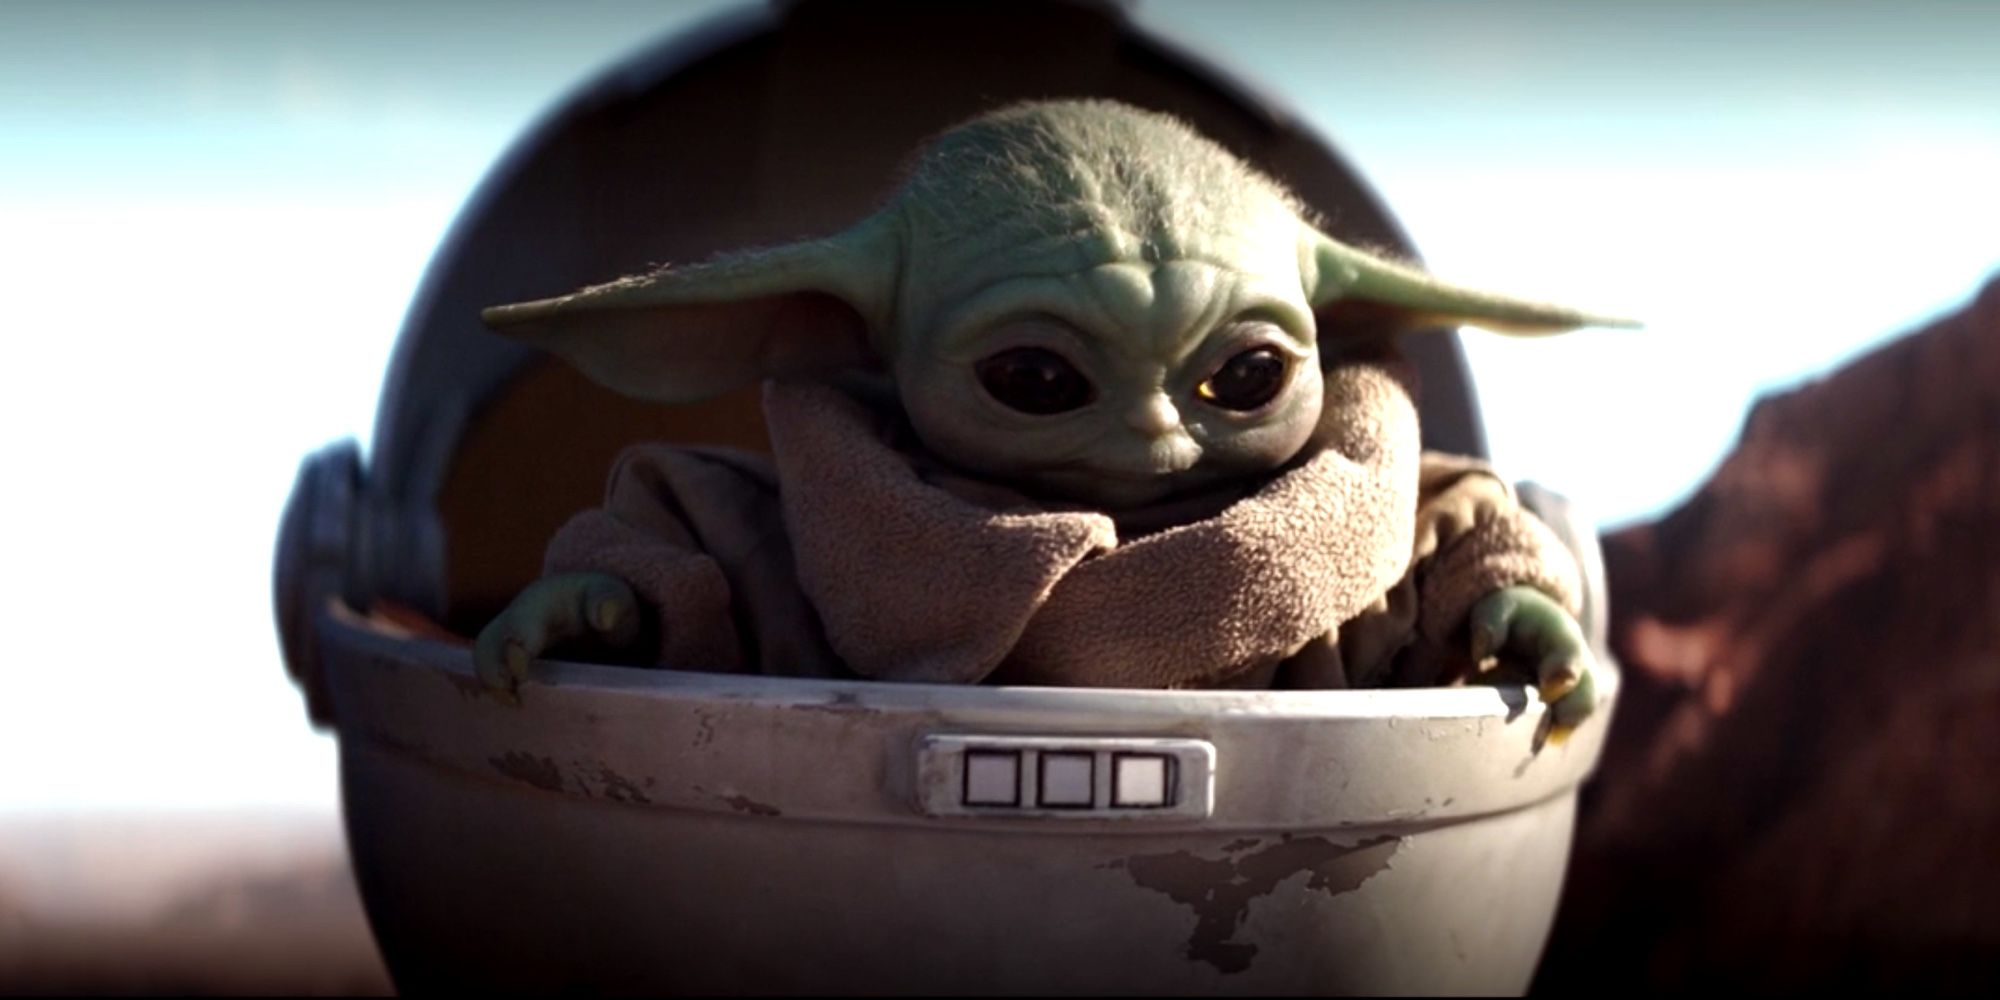 Mandalorian: Baby Yoda GIFs Restored After Copyright Confusion